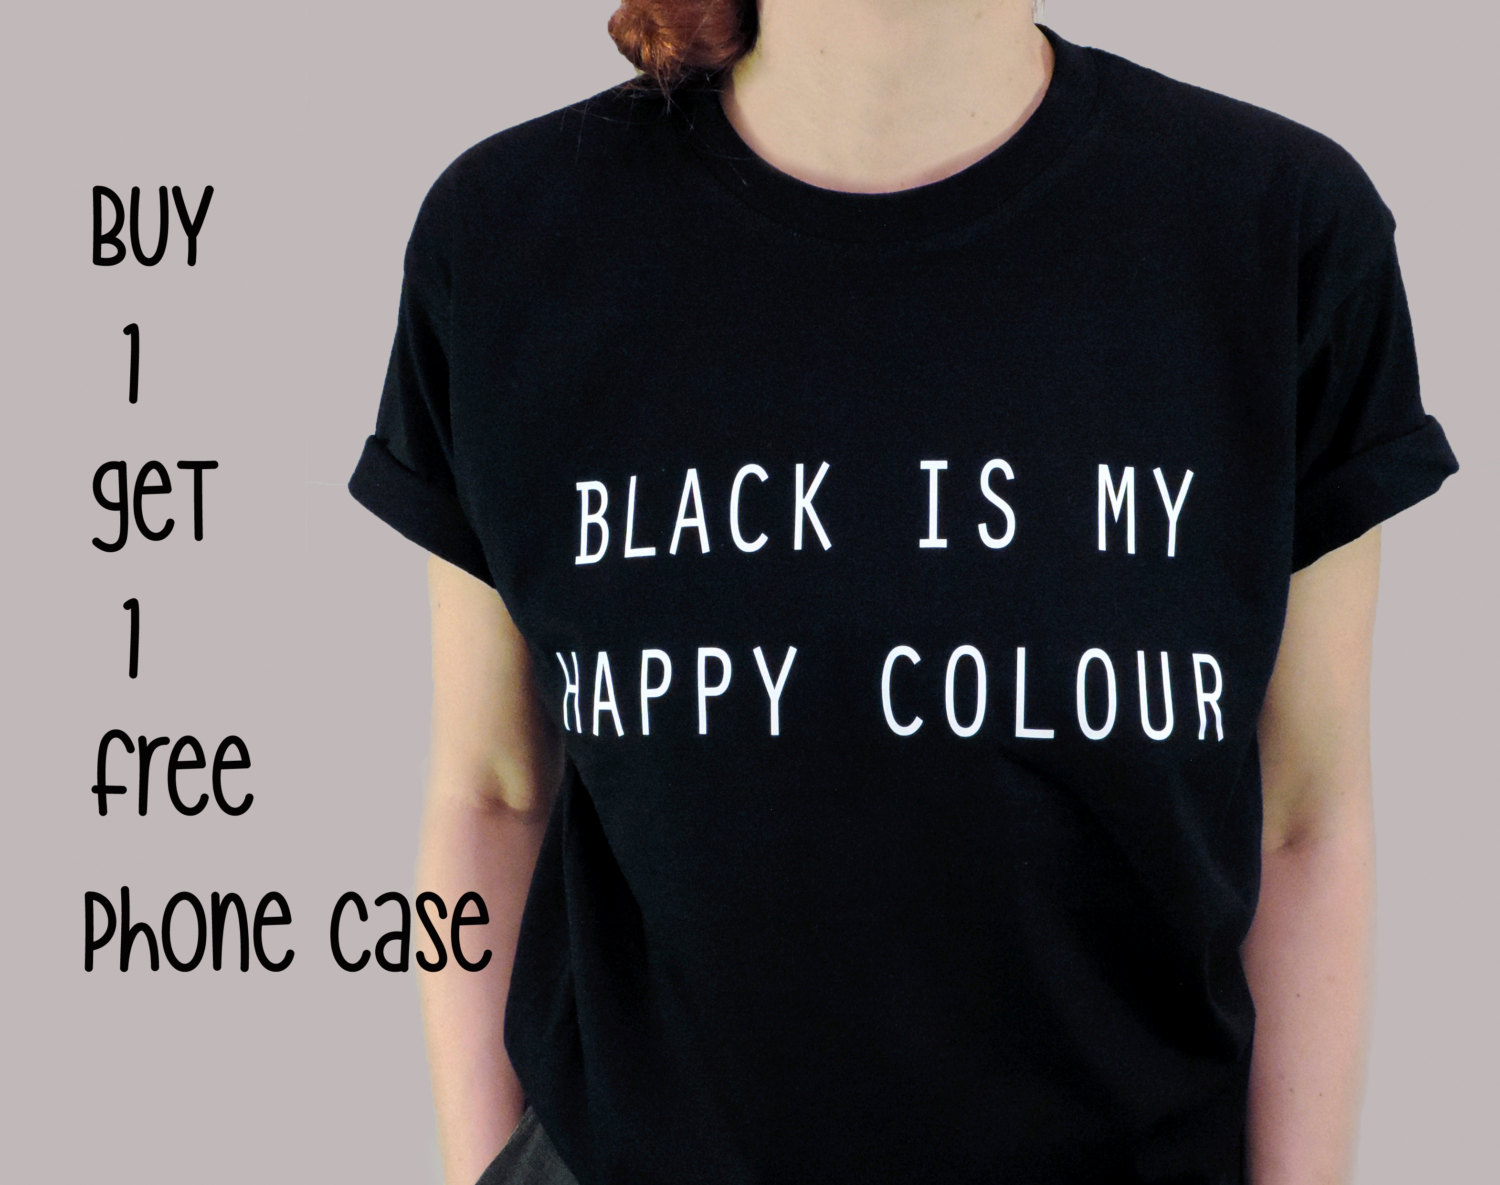 T shirt black is my happy color - Black Is My Happy Colour Tumblr Blogger Instagram Happy Color Shirt Tumblr Shirt